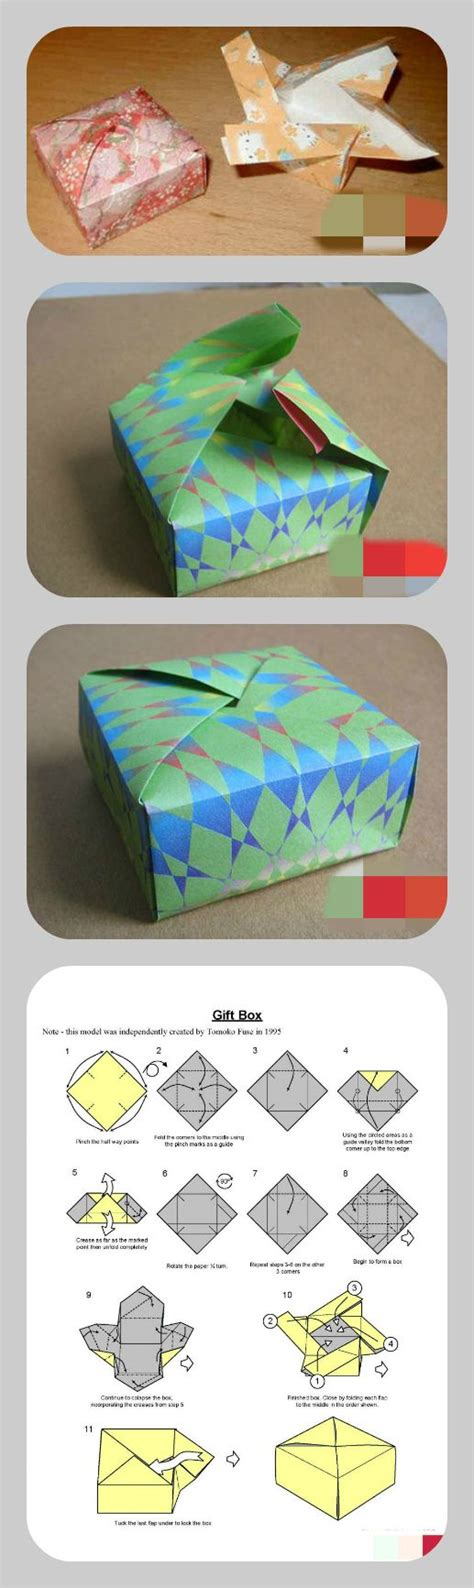 Origami Gift Box Template - the world s catalog of ideas